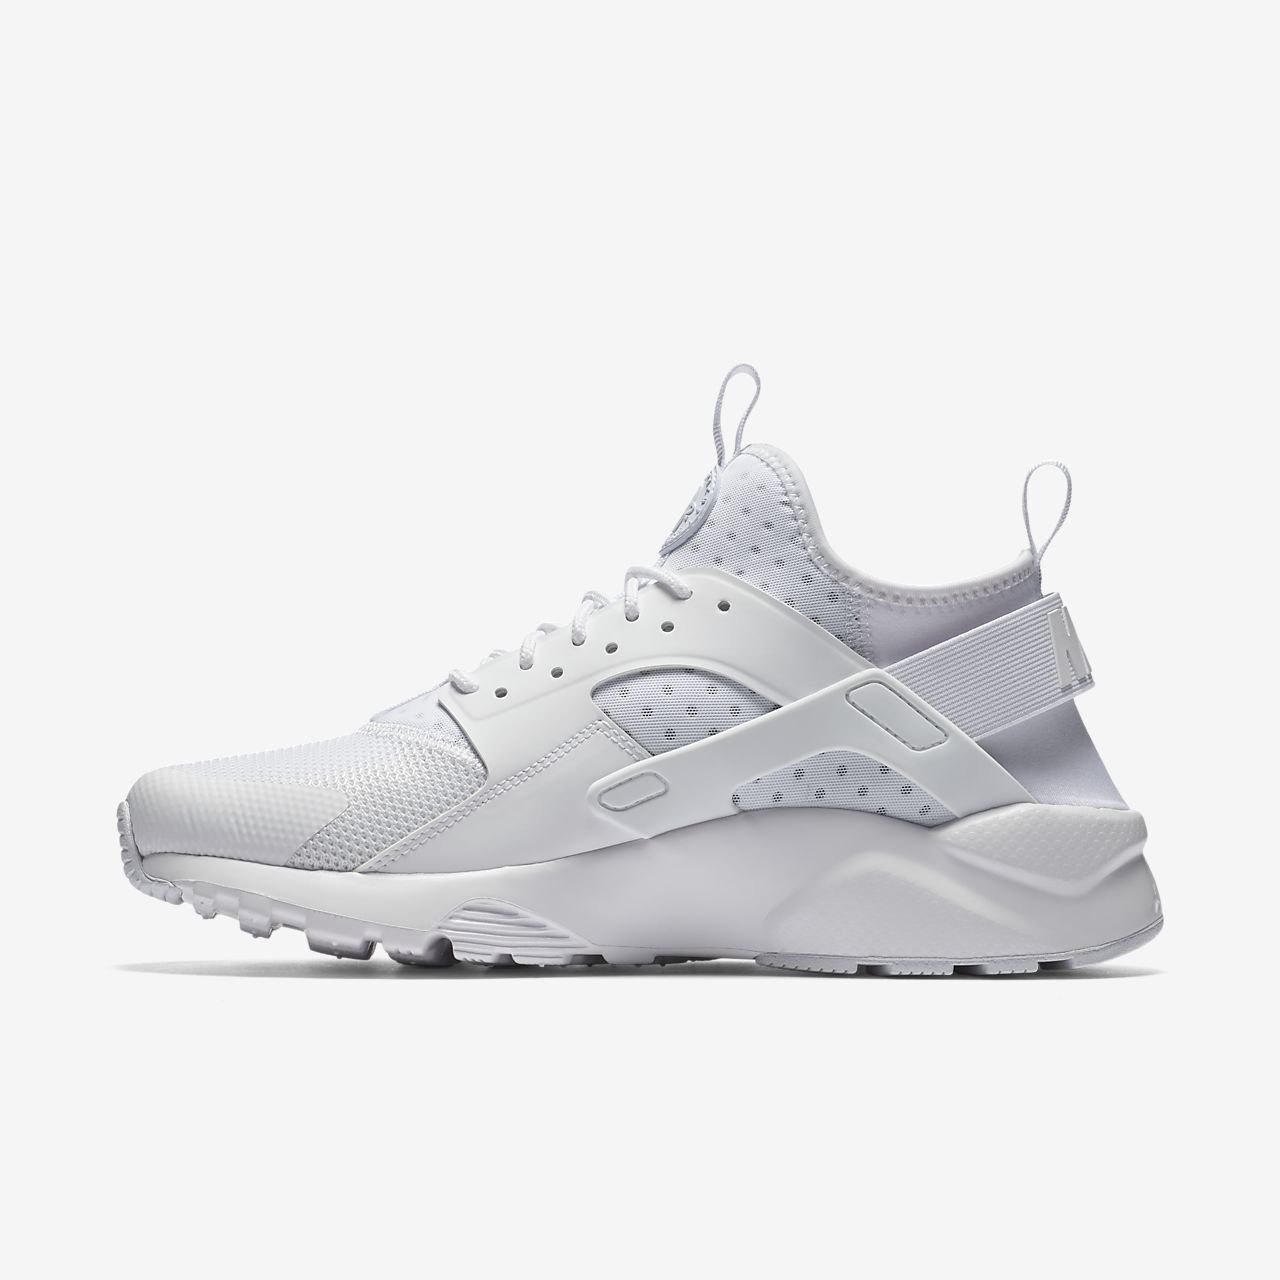 finest selection 7261d 4a5ad ... Nike Air Huarache Ultra Zapatillas - Hombre